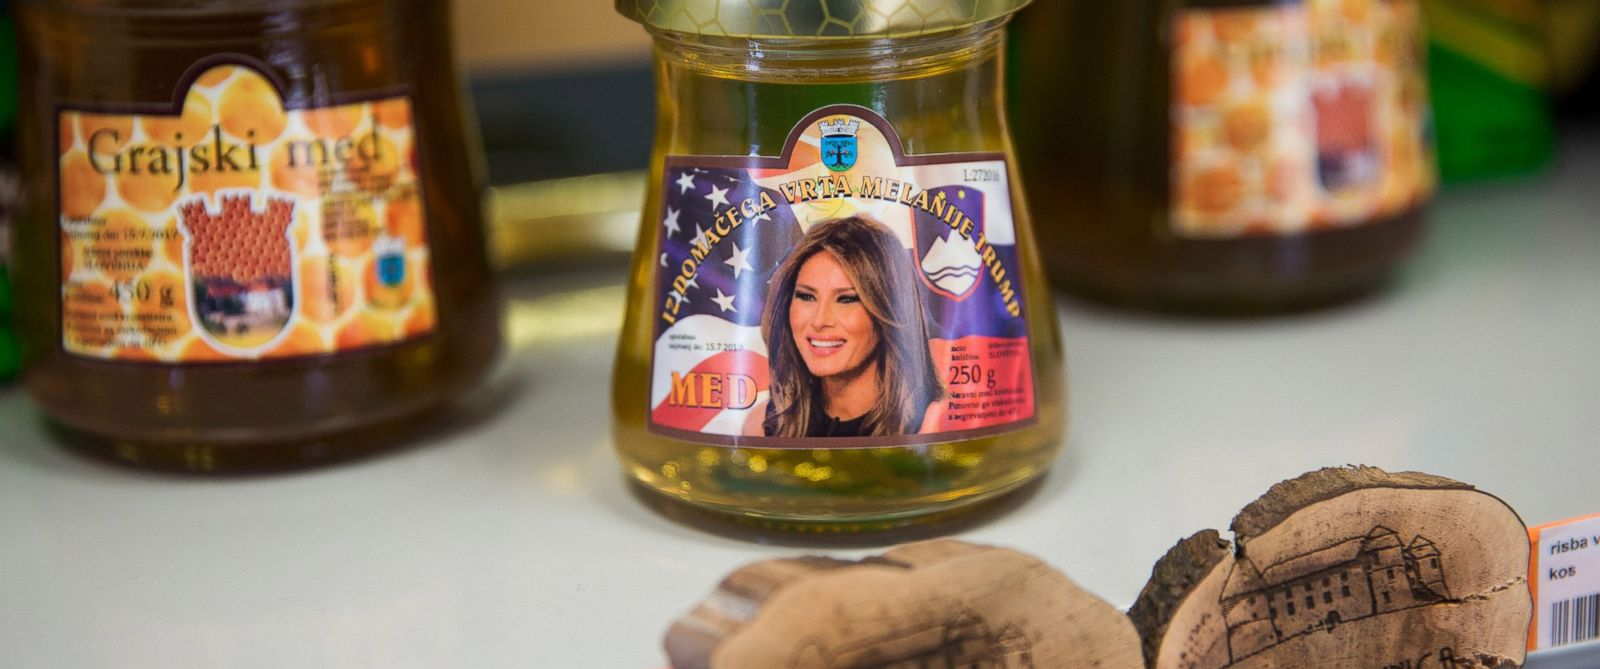 PHOTO: Melania Trump-themed Sevnica honey on display at a tourist information center and shop, Nov. 29, 2016 in Sevnica, Slovenia.